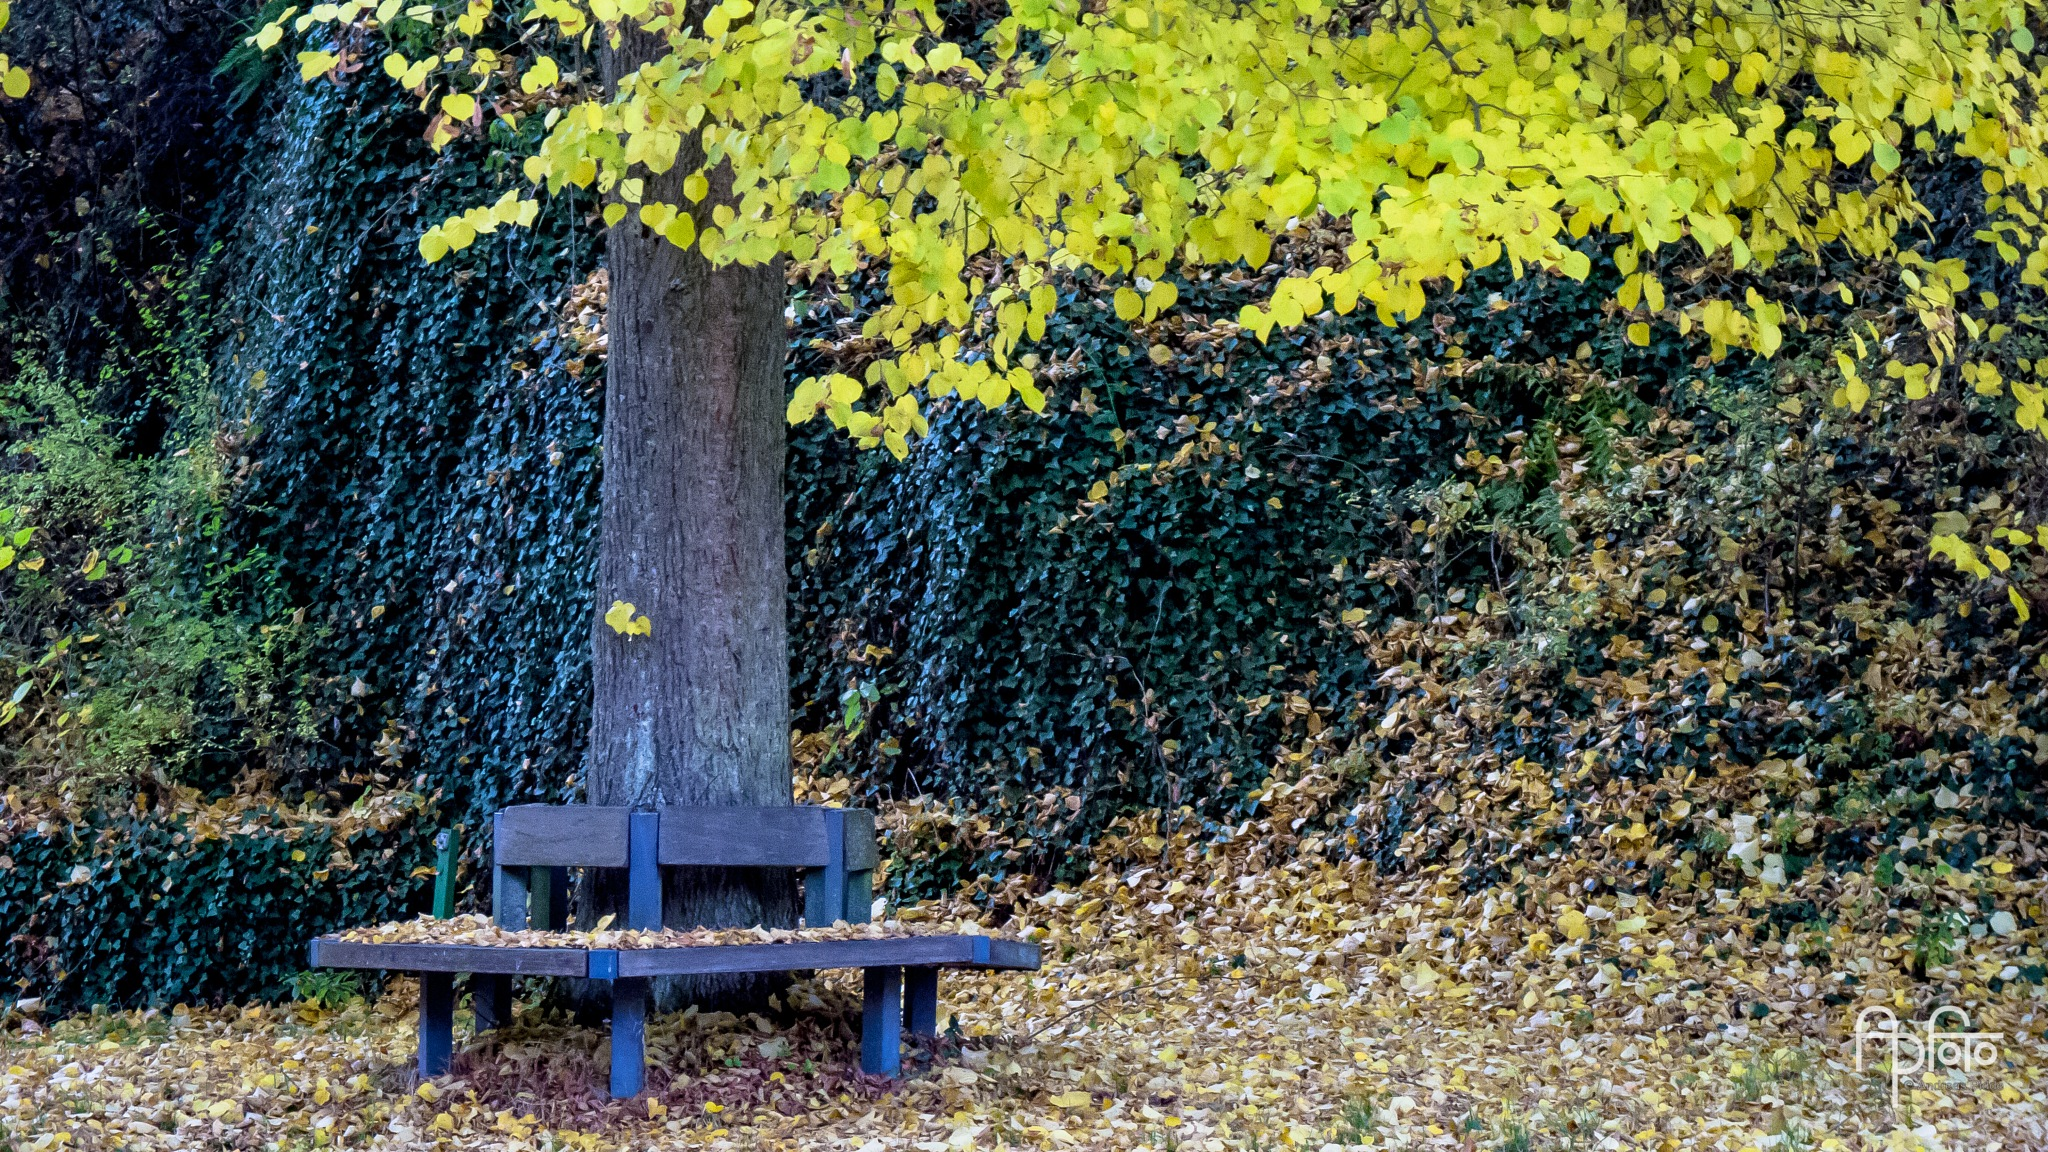 The bench by Andreas Pidde